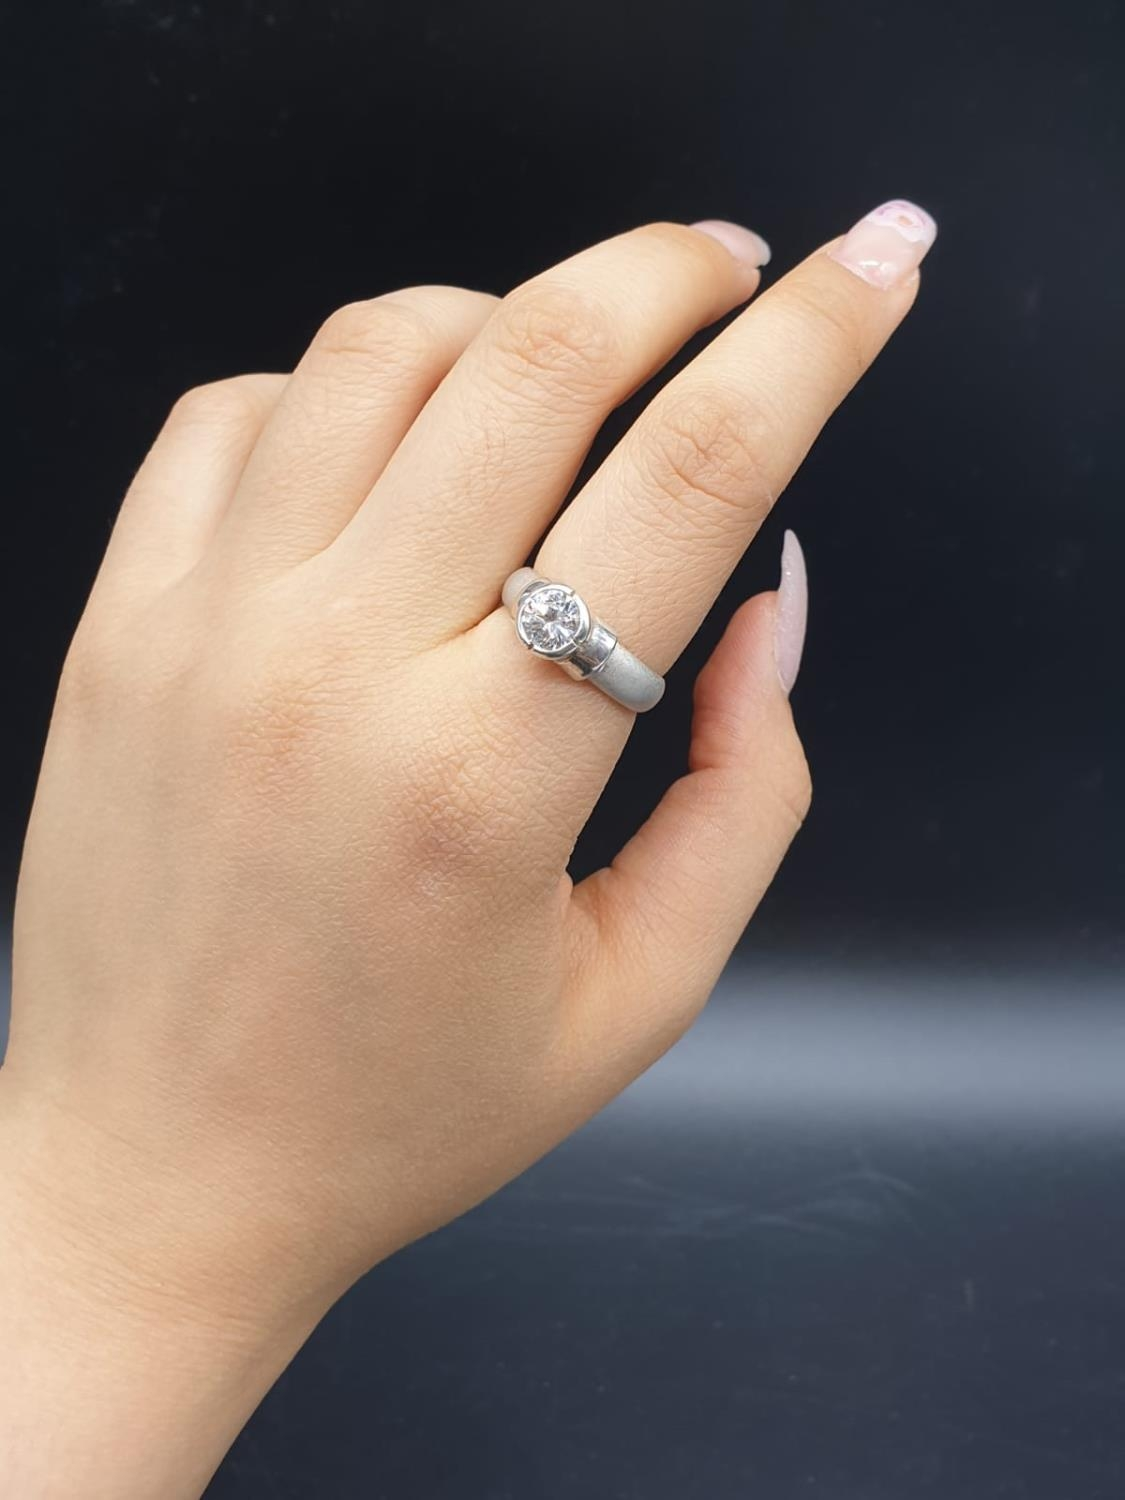 Silver Ring with large CZ Stone 3.6g Size P - Image 4 of 7